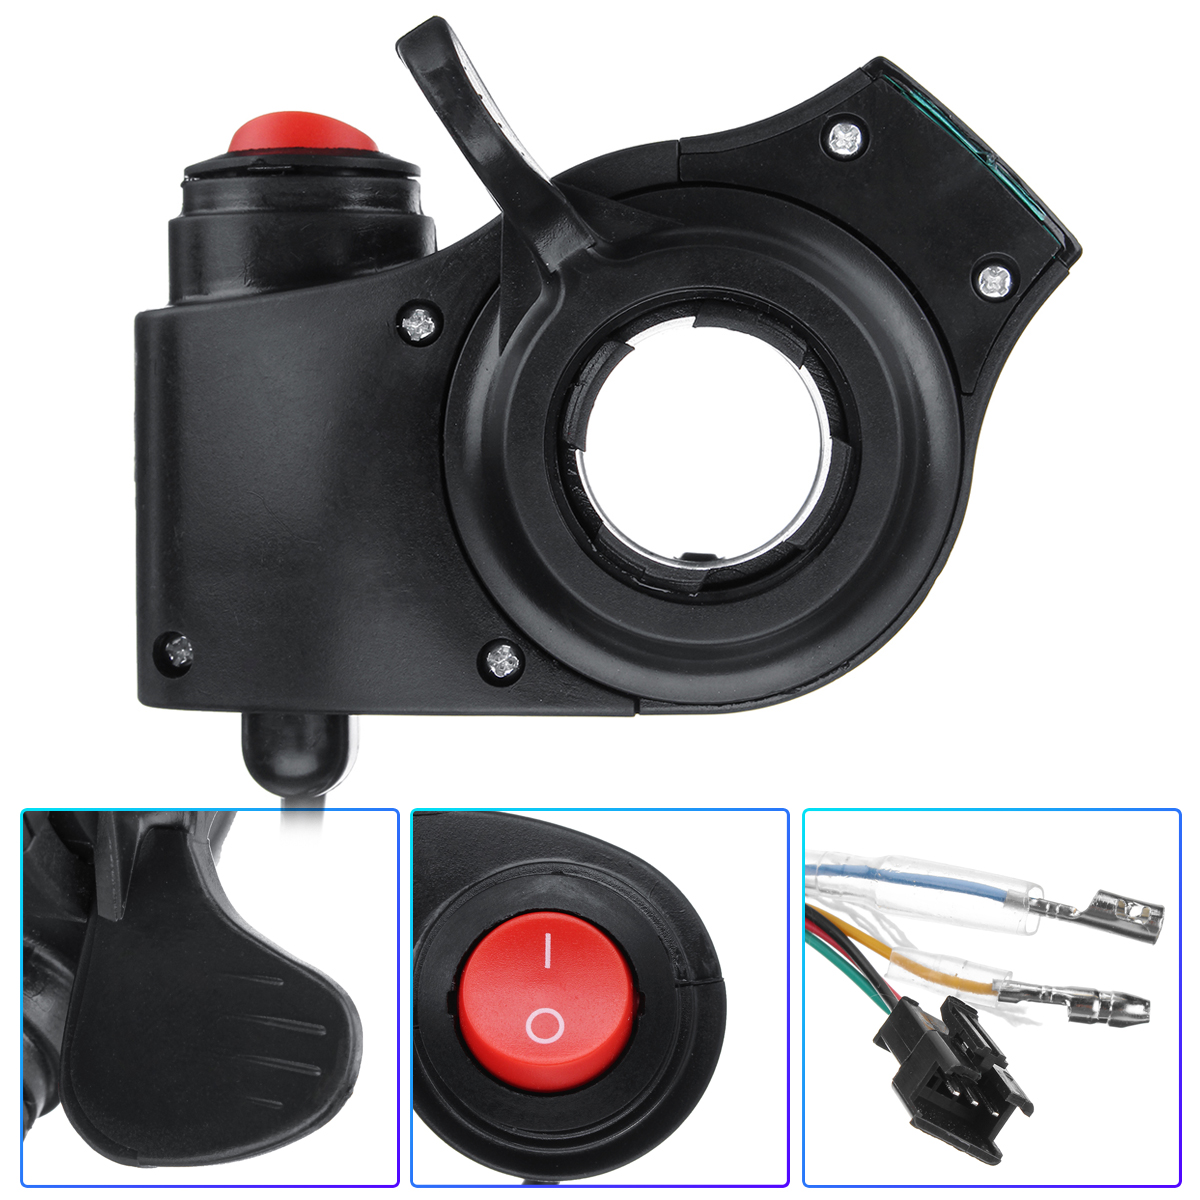 Black Thumb Throttle With Power Switch LED Display 12V-72V For Electric Bike